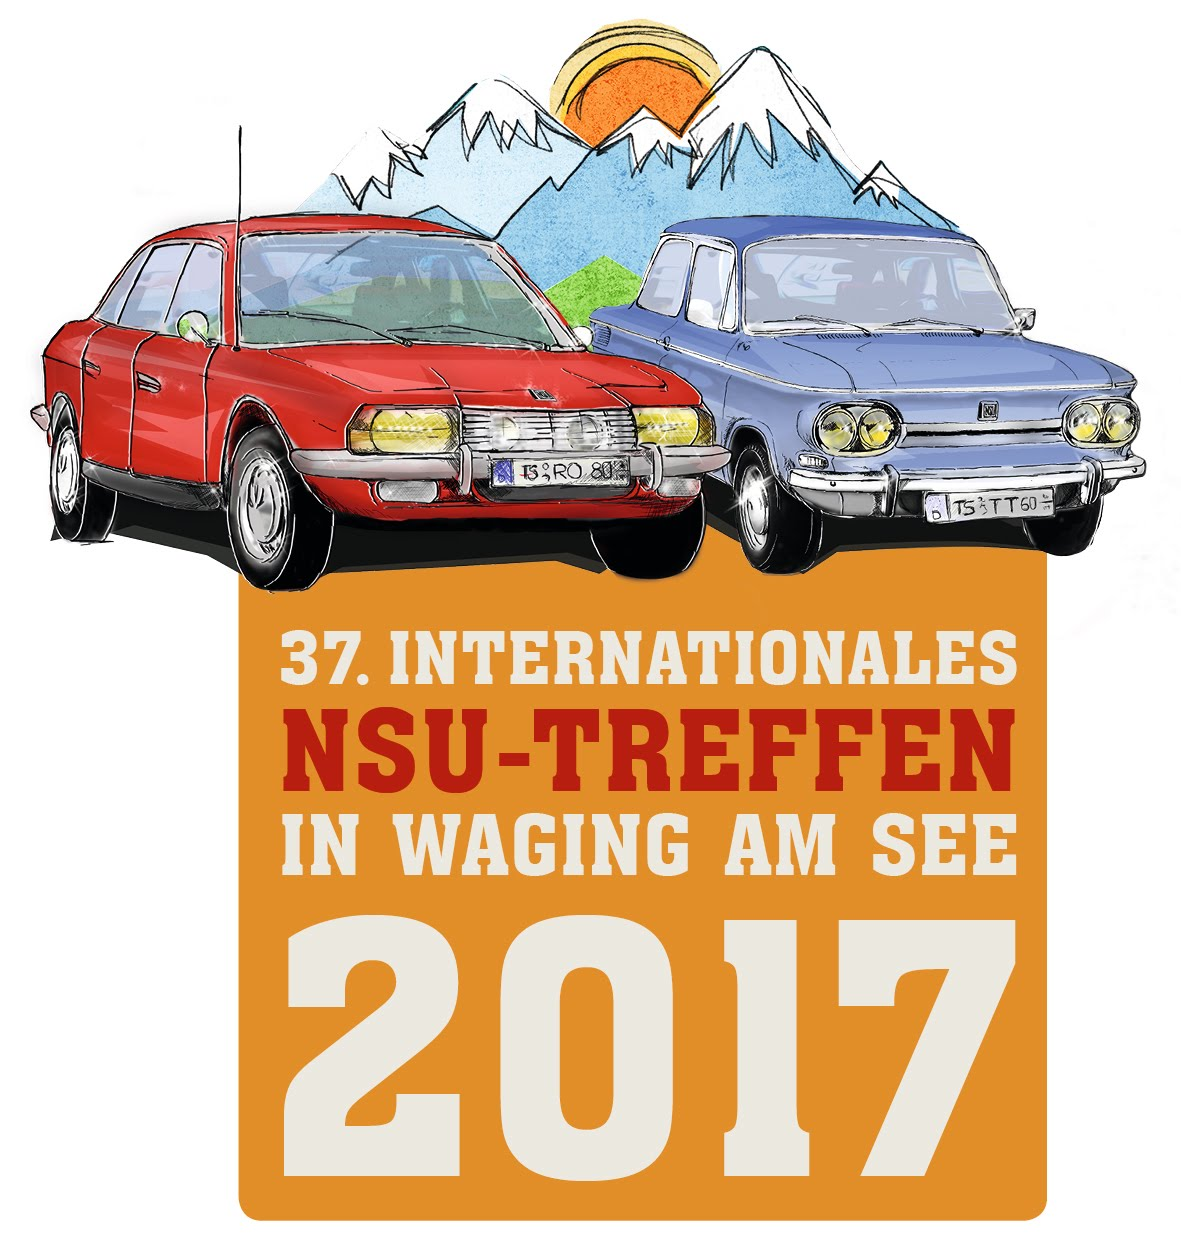 37. Internationales NSU-Treffen in Waging am See